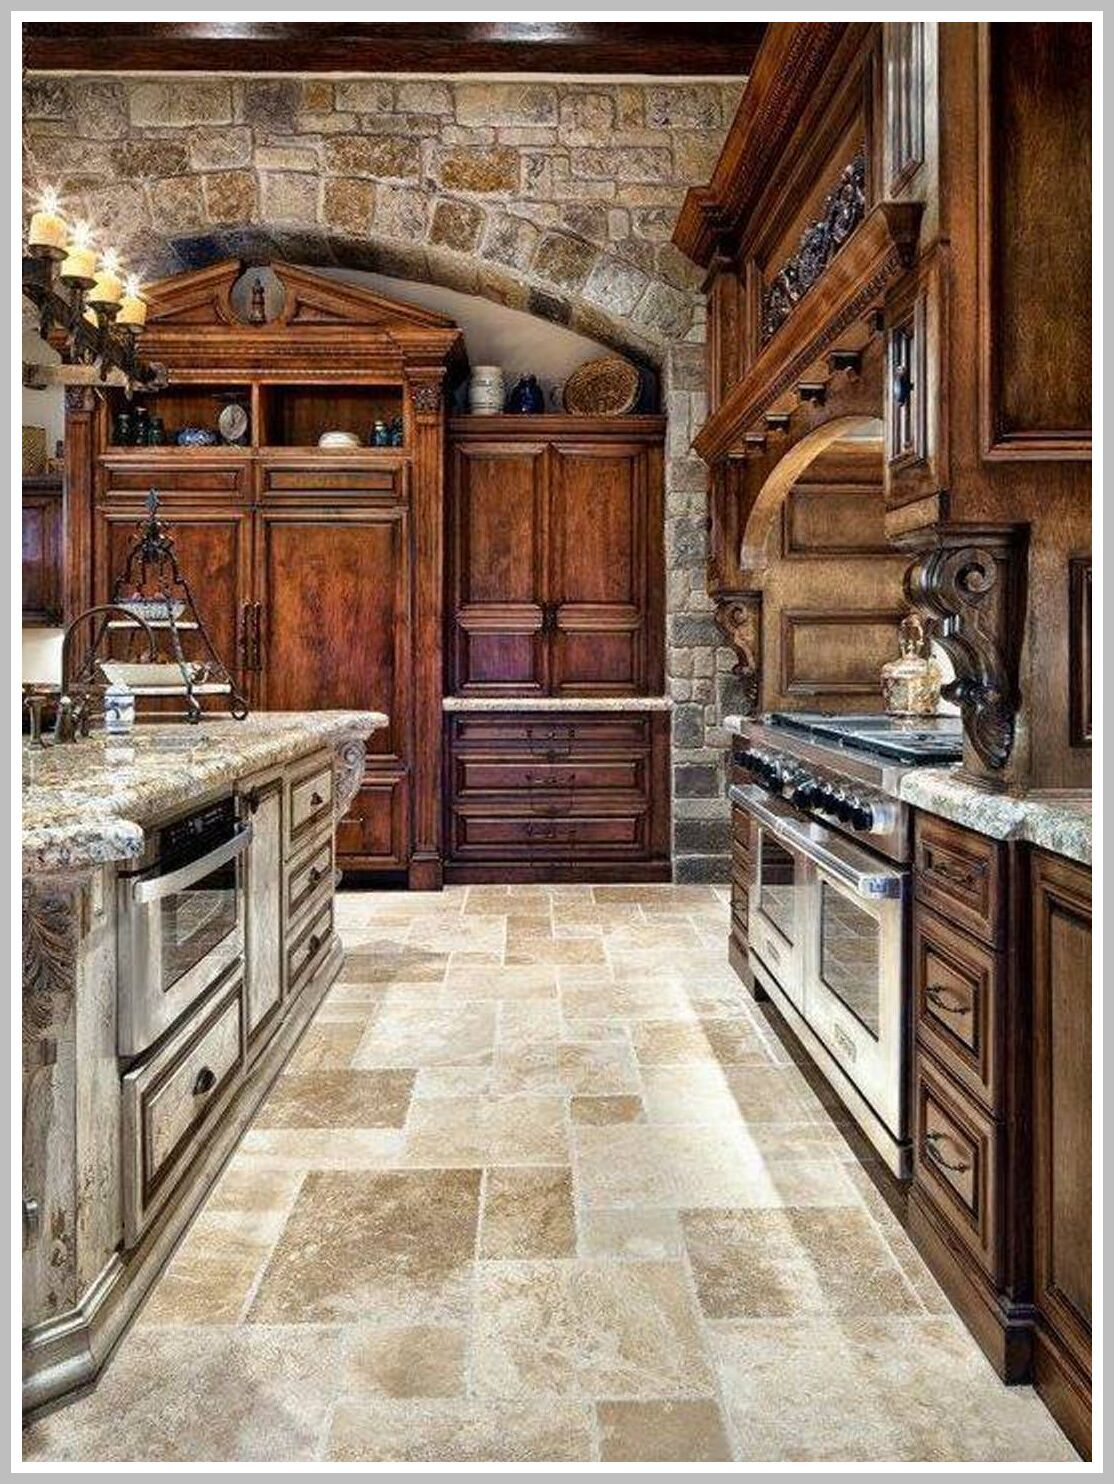 58 Reference Of Kitchen Cabinets Old World Style In 2020 Stone Kitchen Design Tuscan Kitchen Design Tuscan Kitchen